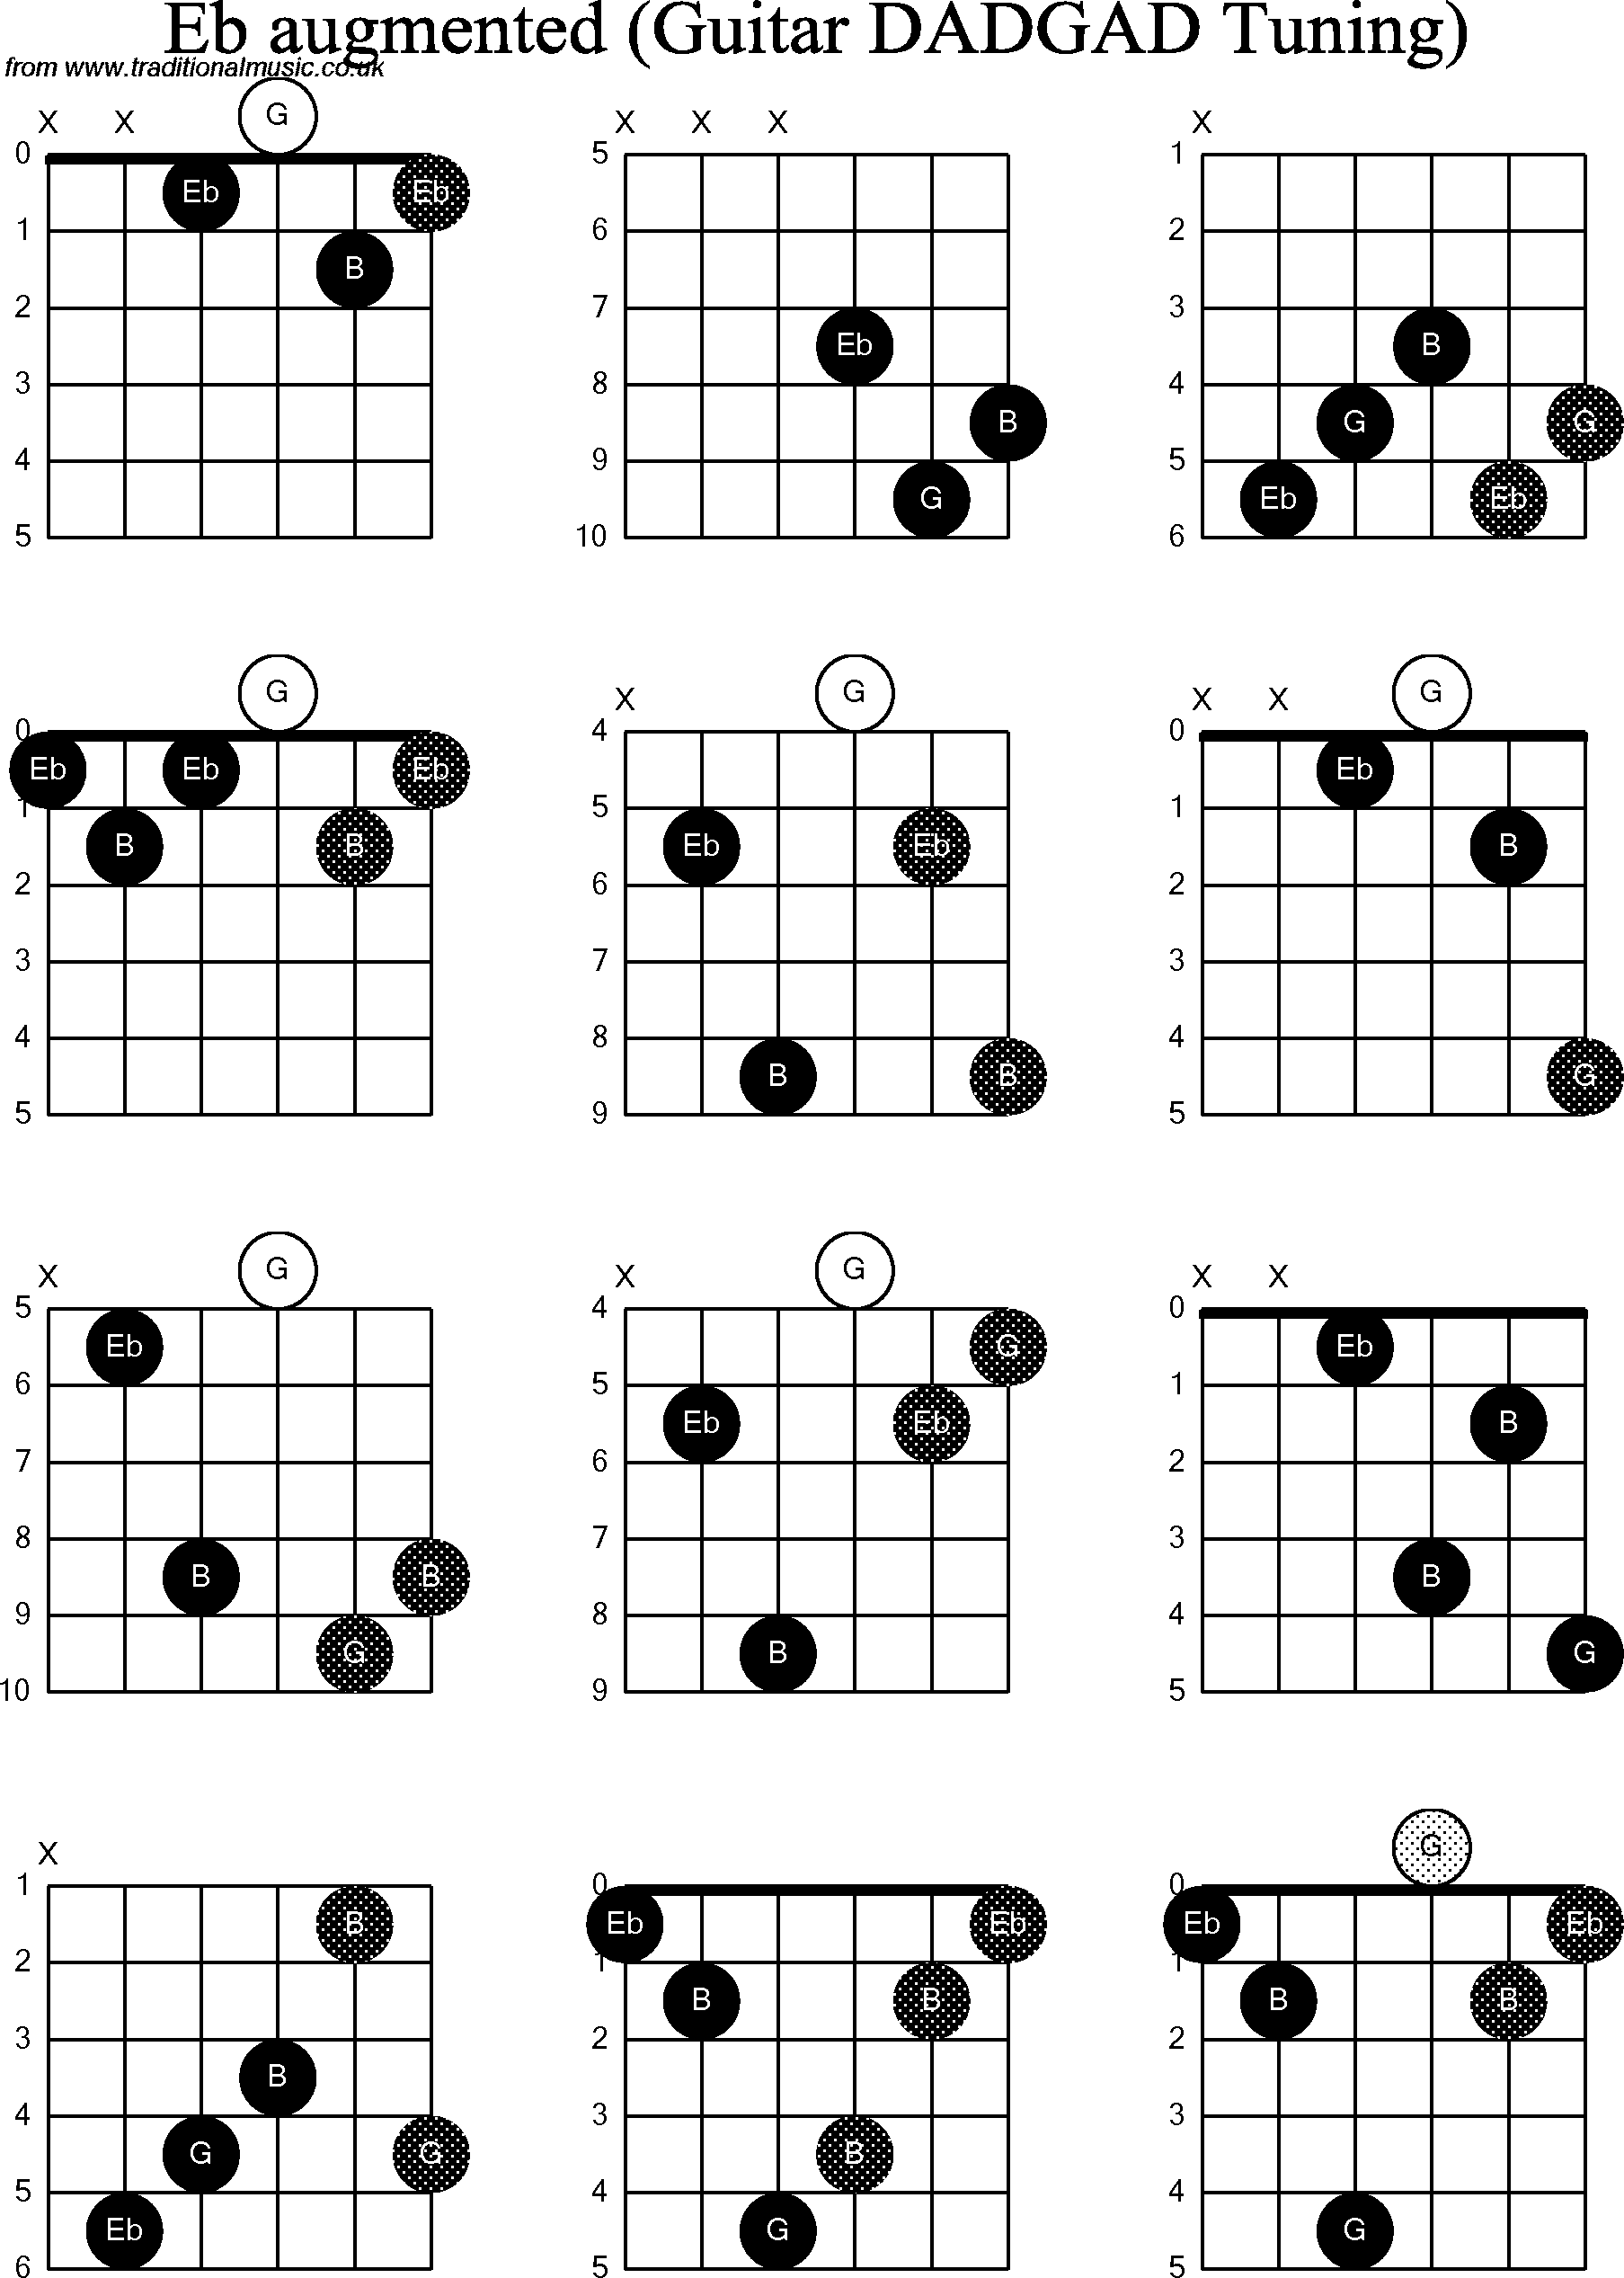 Chord Diagrams D Modal Guitar Dadgad Eb Augmented